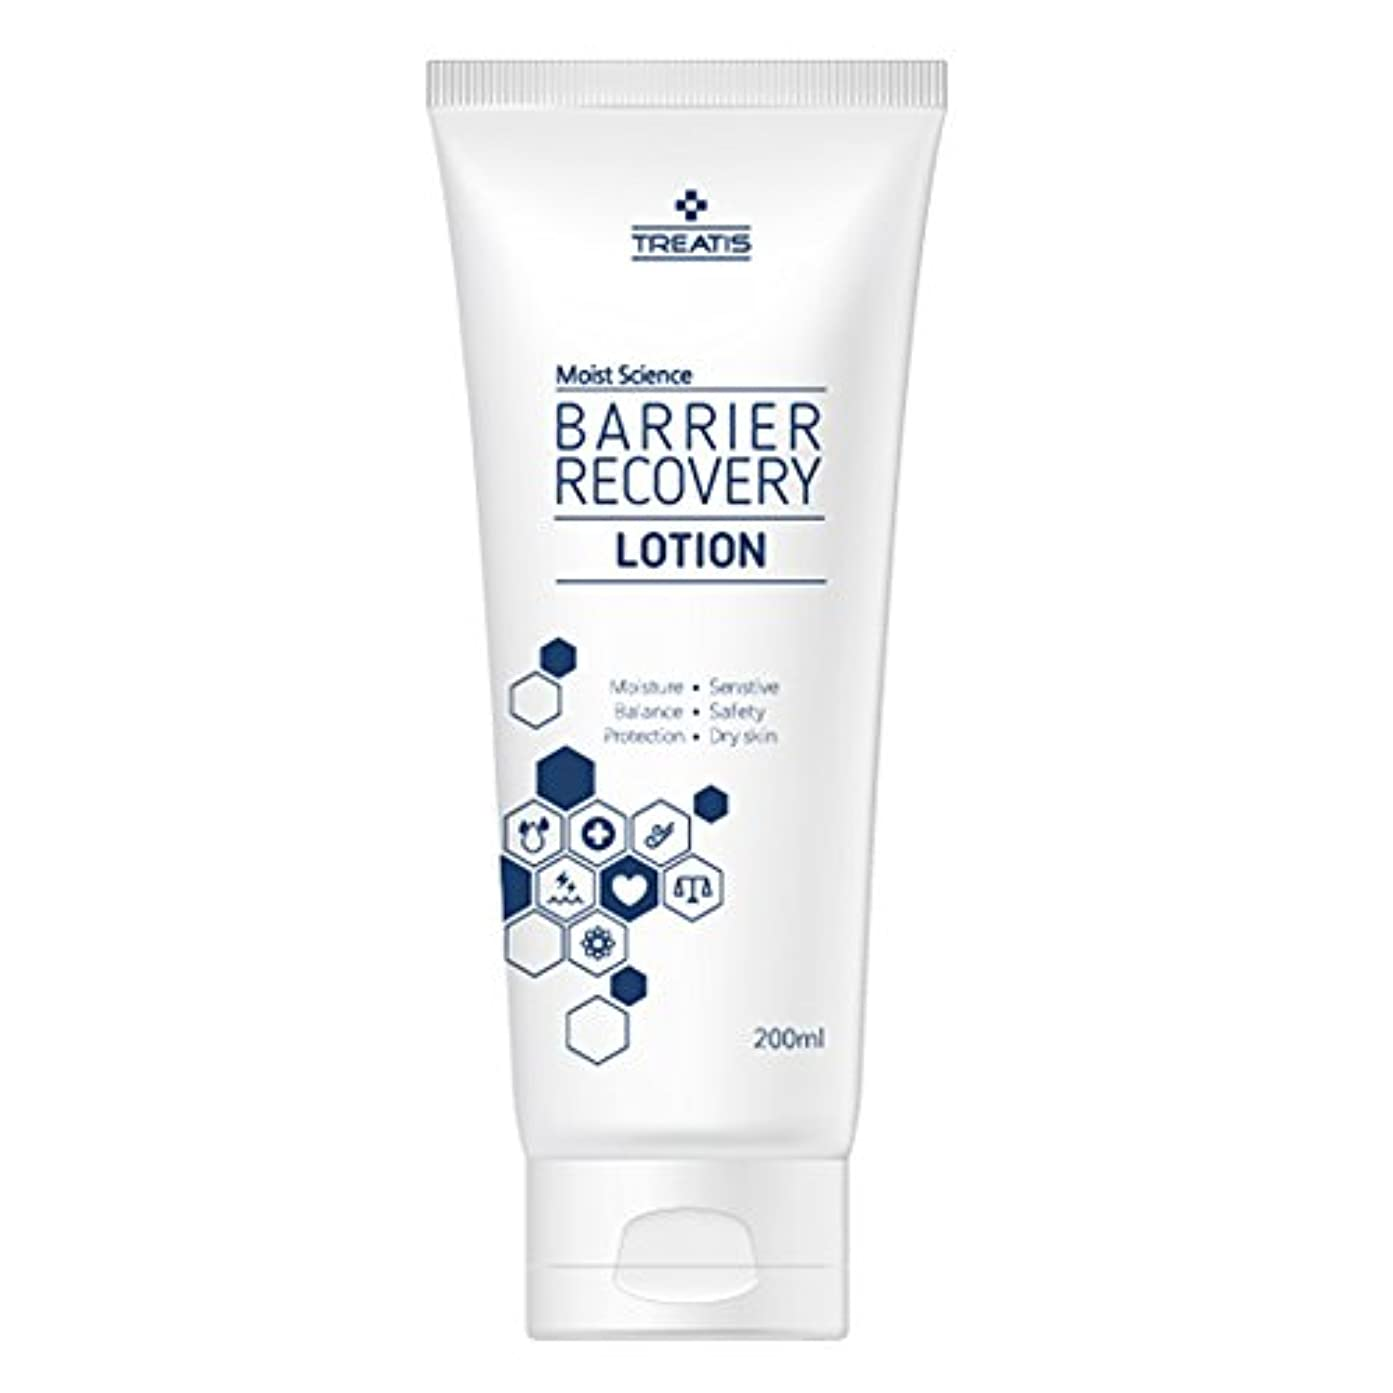 設置ナプキンリーフレットTreatis barrier recovery lotion 7oz (200ml)/Moisture, Senstive, Balance, Safty, Protection, Dry skin [並行輸入品]